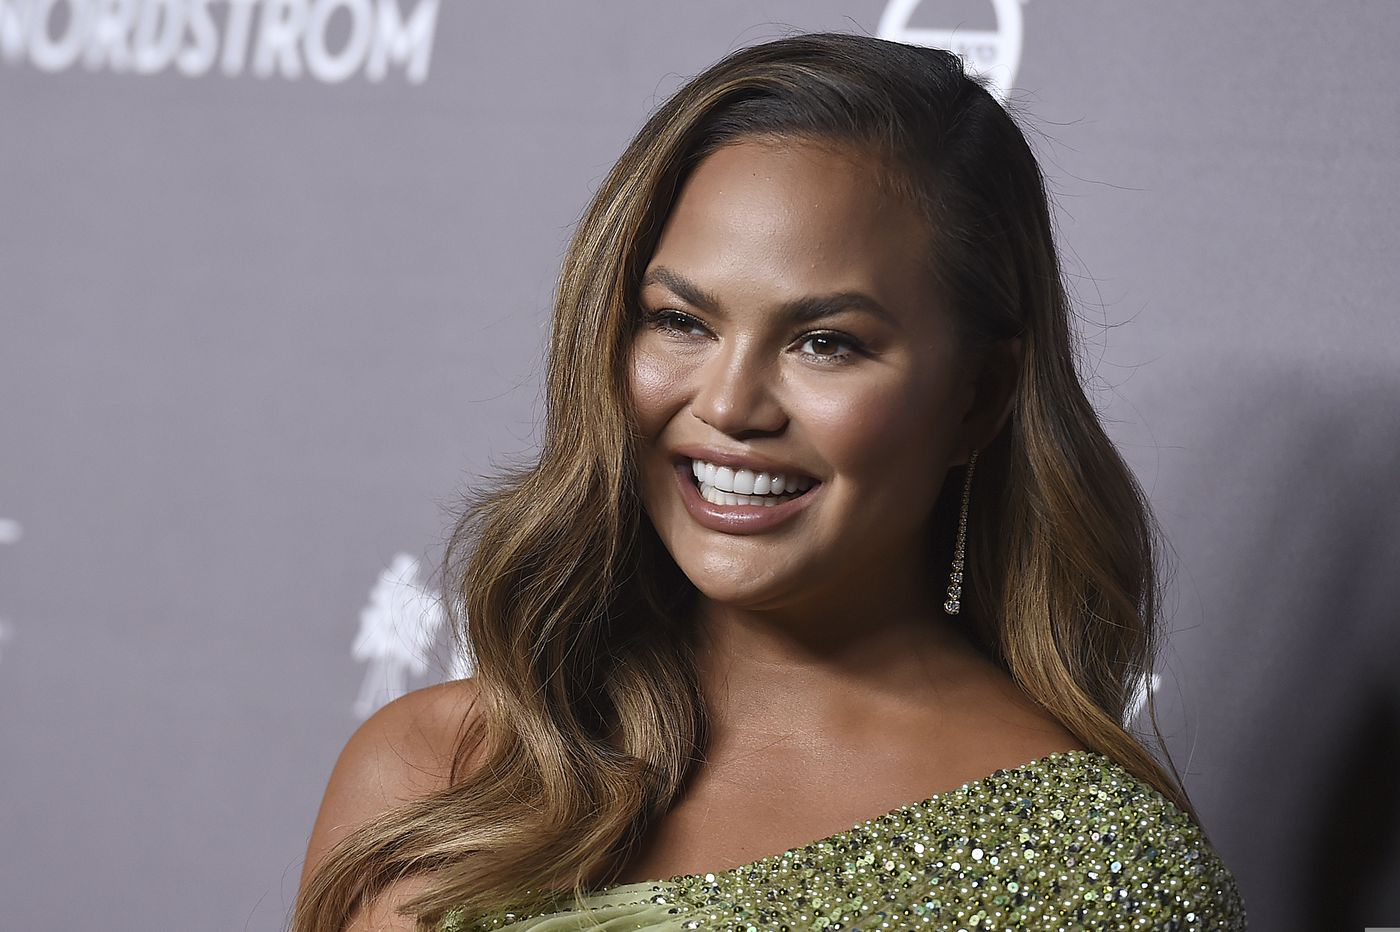 Chrissy Teigen tweeted a picture of her birthday present: a Pat's cheesesteak